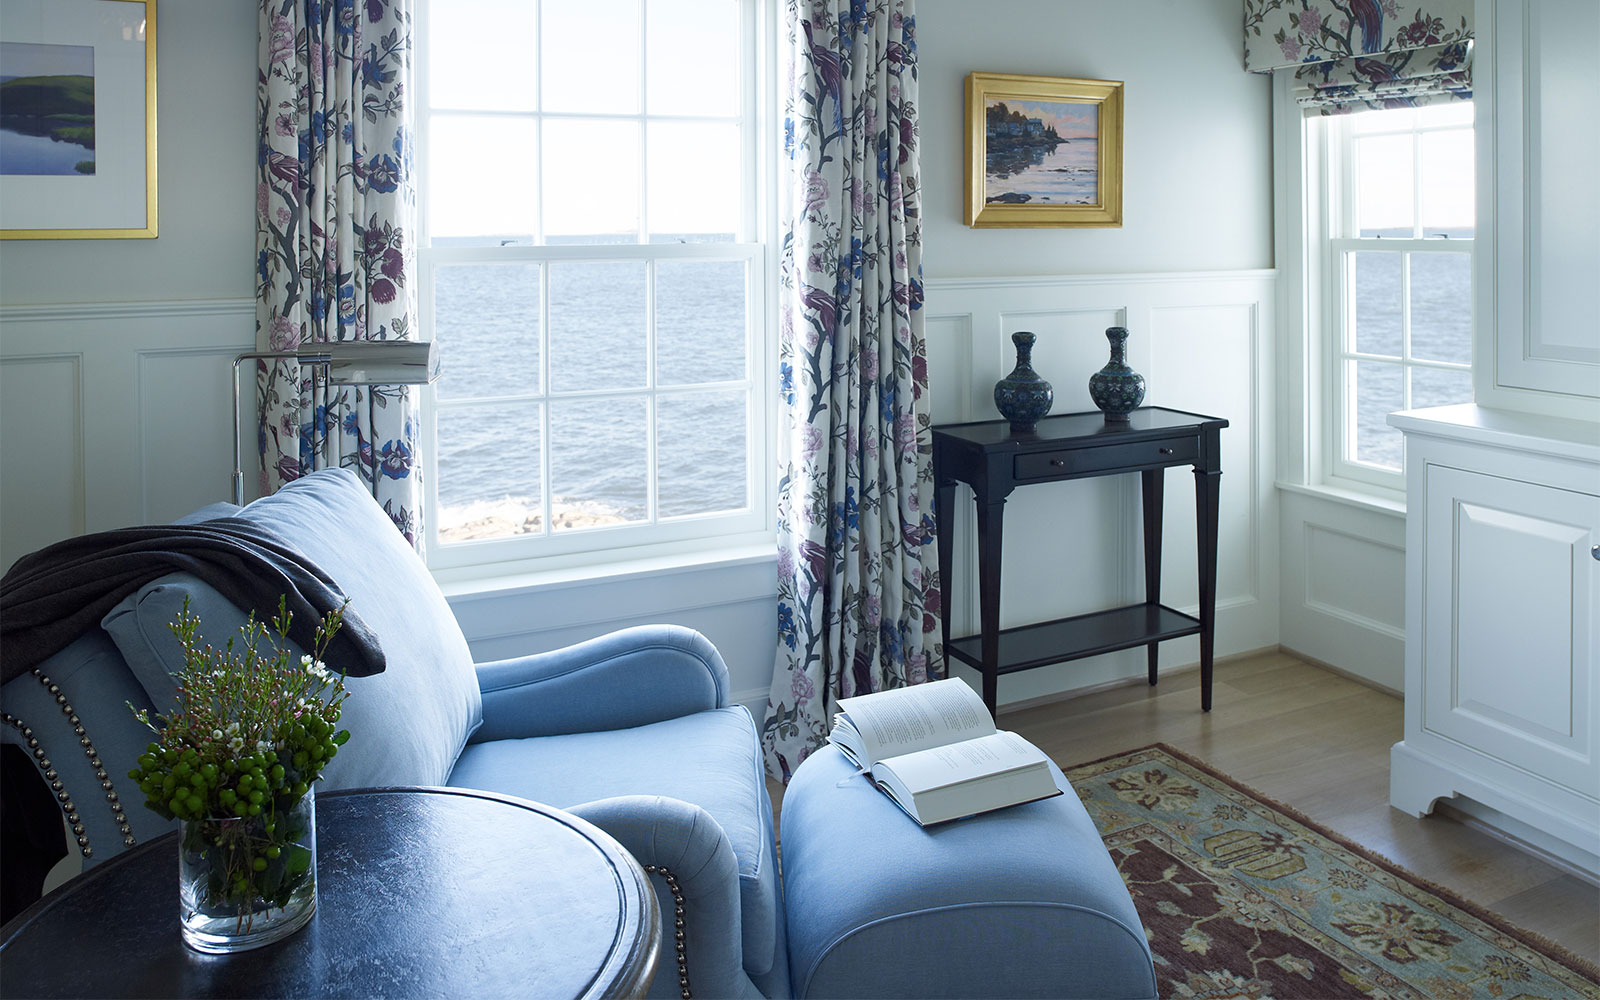 11 Intimate East Coast Inns to While Away Your Summer: Inn at Cuckolds Lighthouse on Cuckolds Island, Maine